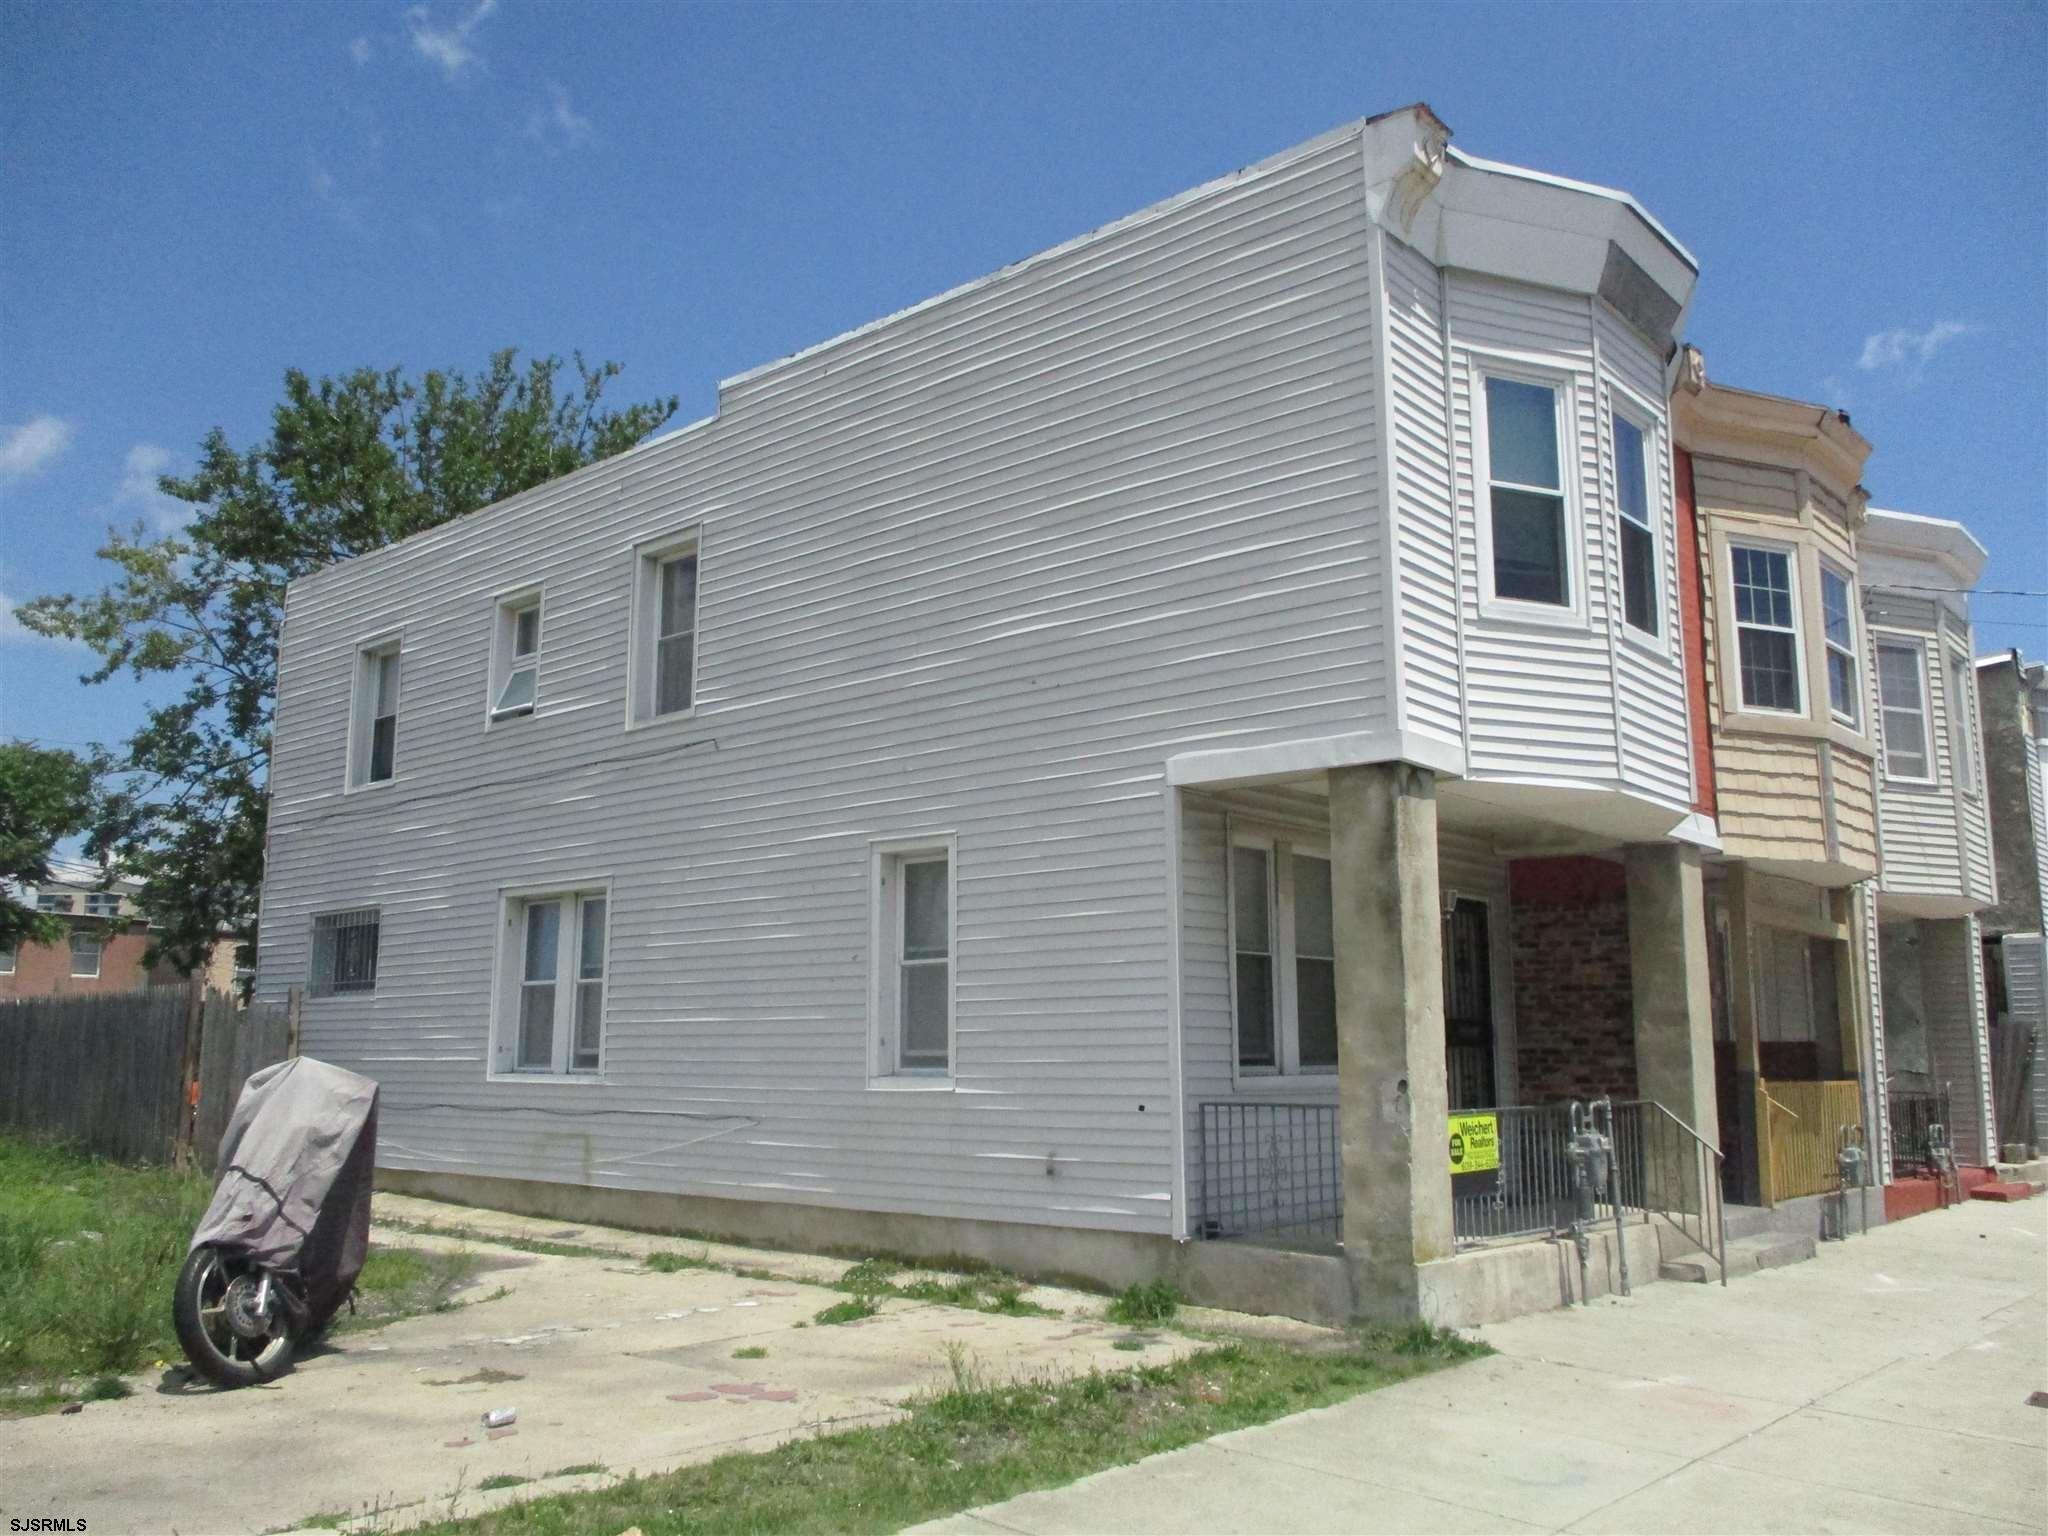 INVESTOR ALERT - Purchase for about 2 BITCOINS! Currently rented turnkey investment property. Purcha